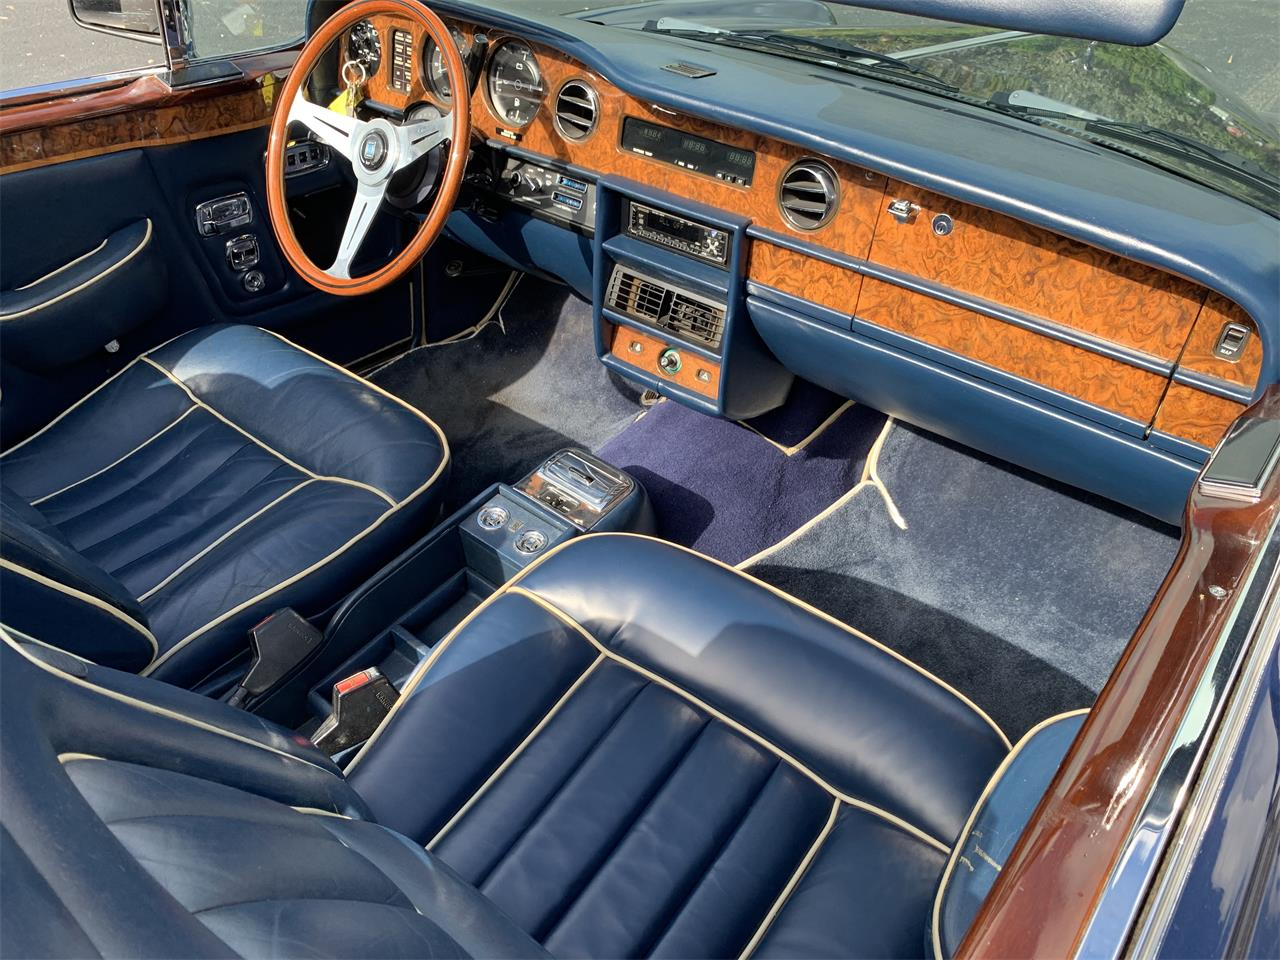 Large Picture of 1983 Corniche located in BOCA RATON Florida Offered by European Autobody, Inc. - PUCW